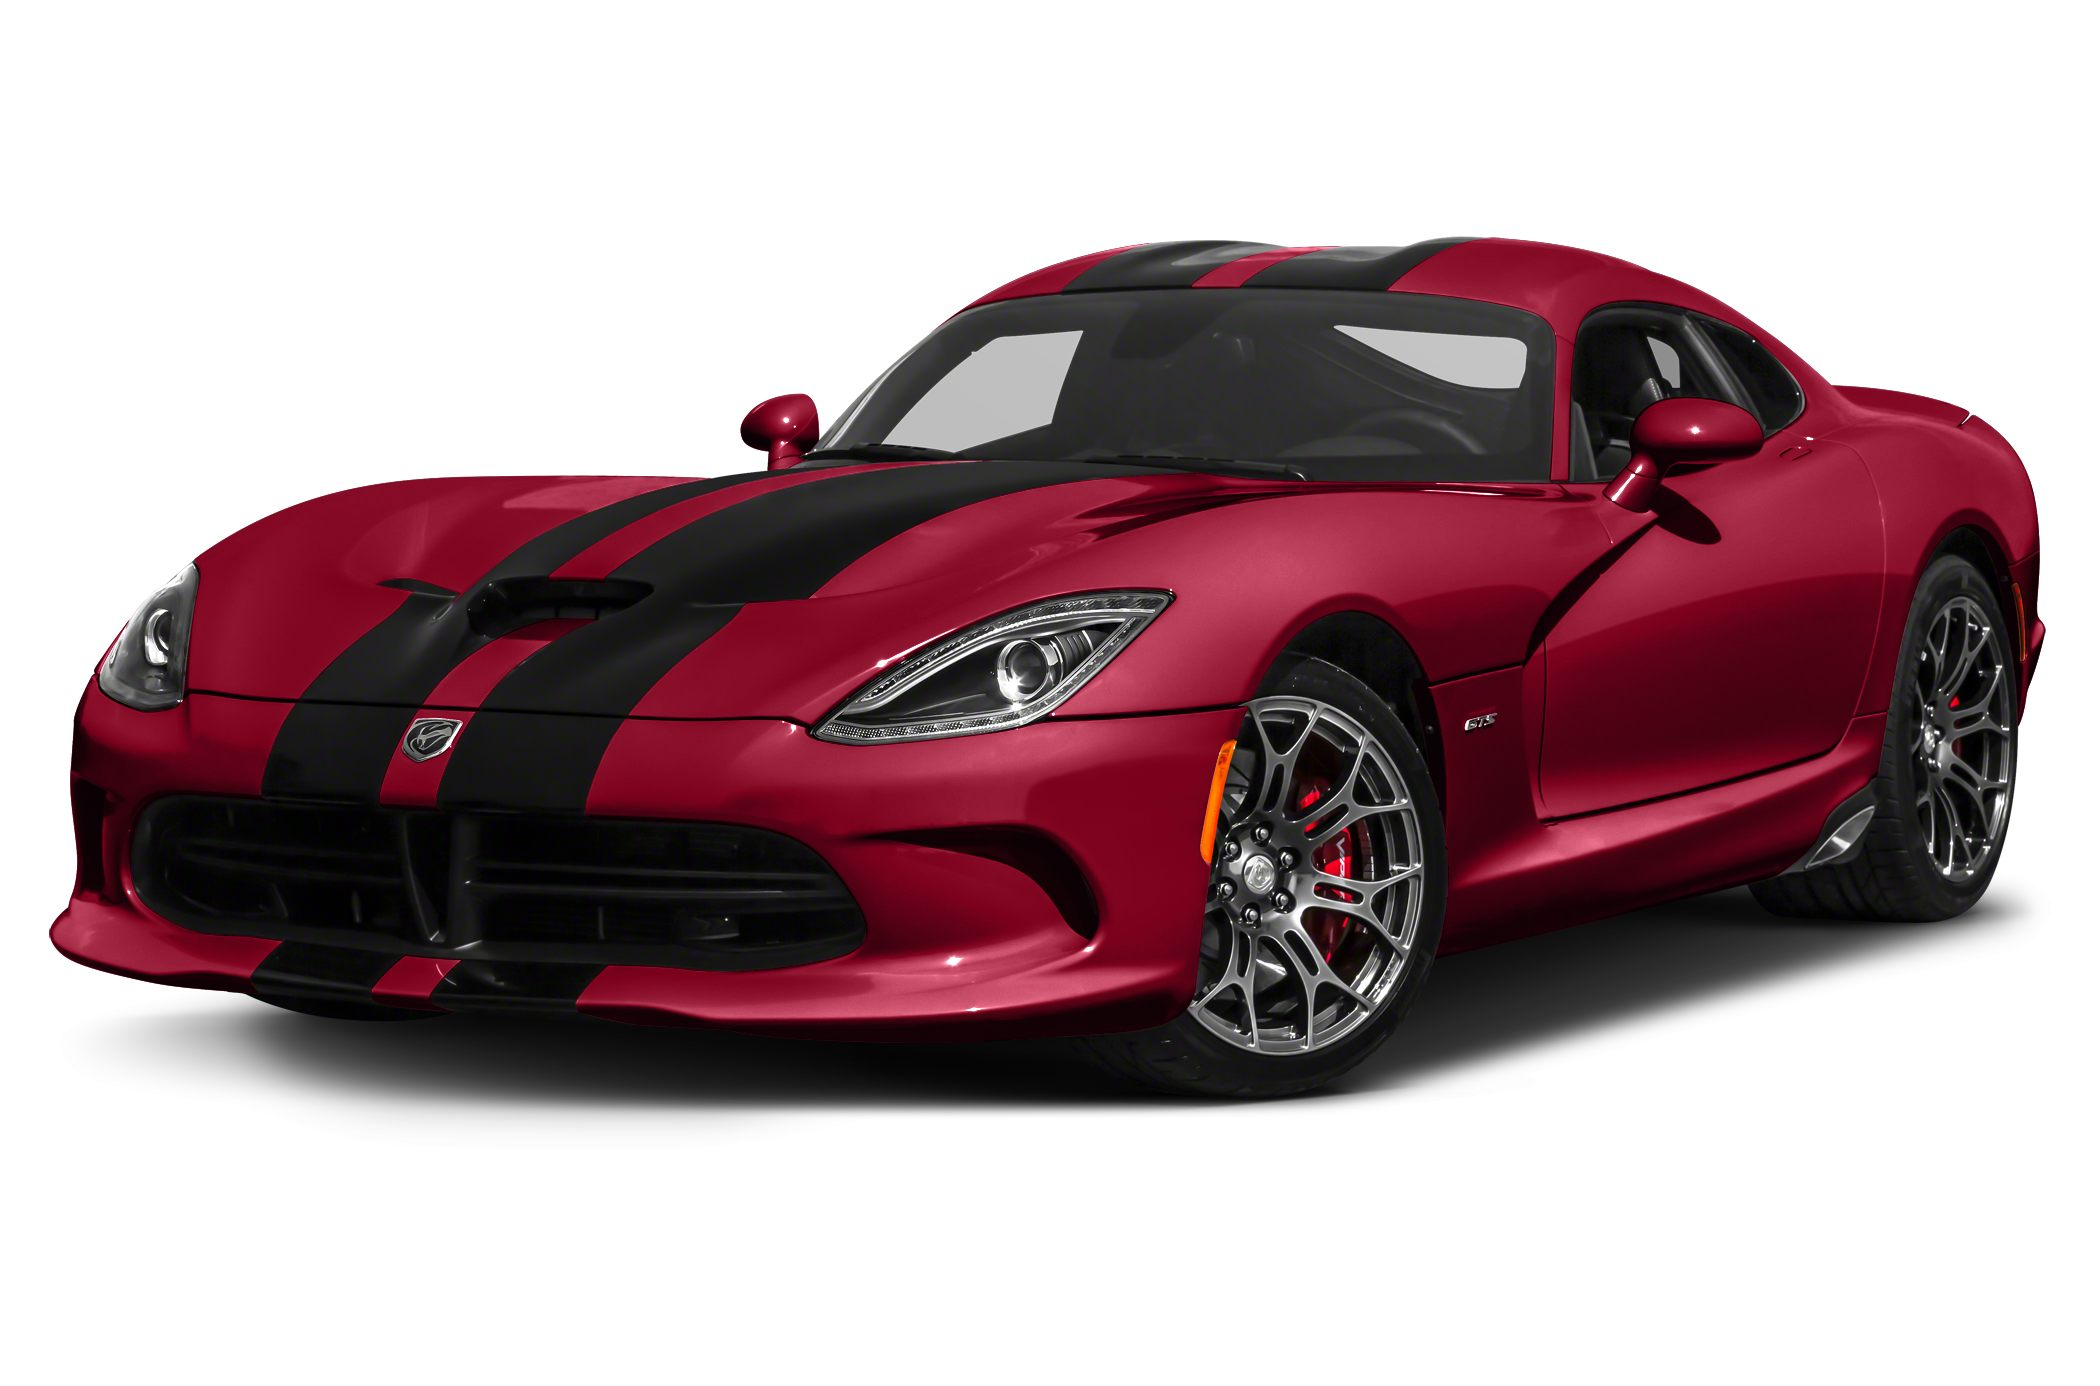 2017 Dodge Viper Gtc >> 2017 Dodge Viper Gtc 2dr Coupe Specs And Prices